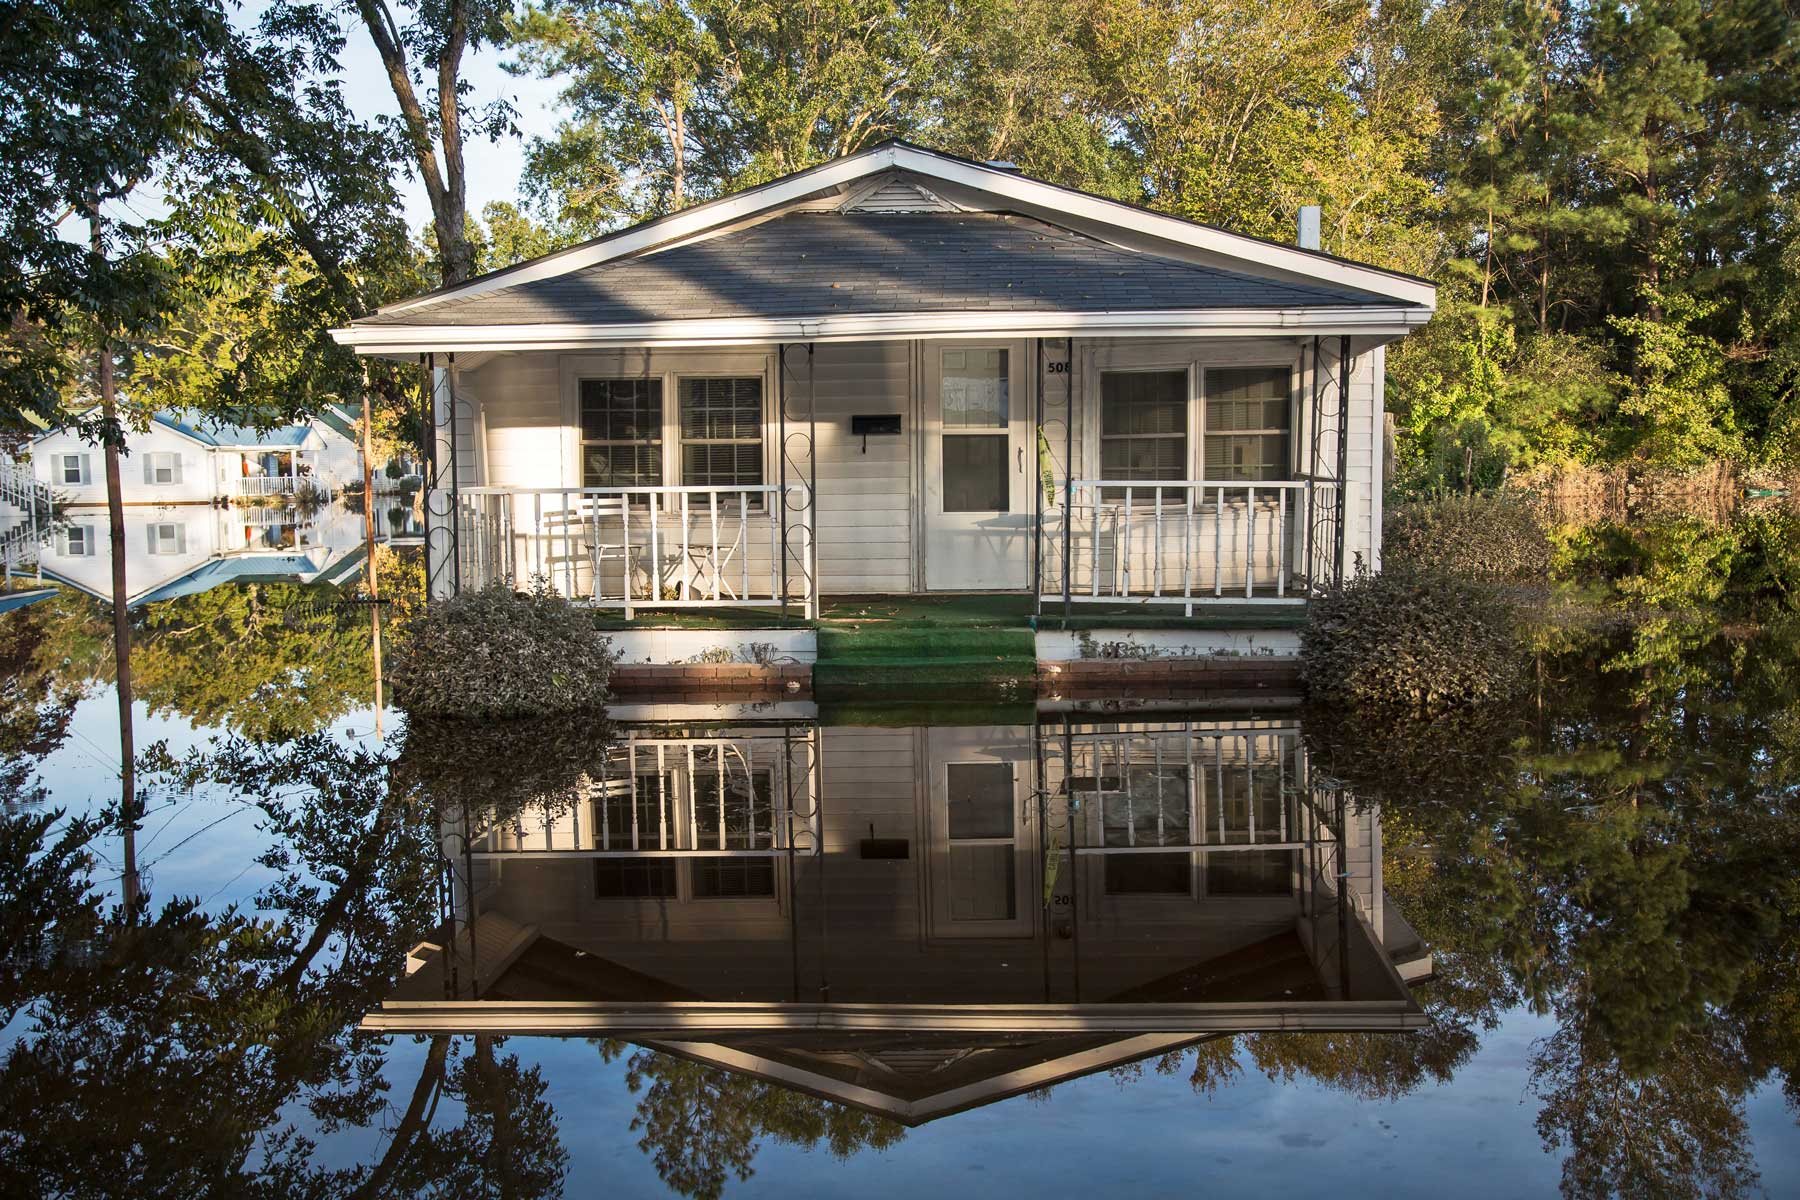 Still waters became the canvas for the photographer, capturing striking symmetry between the homes and their reflections. (Julie Dermansky)